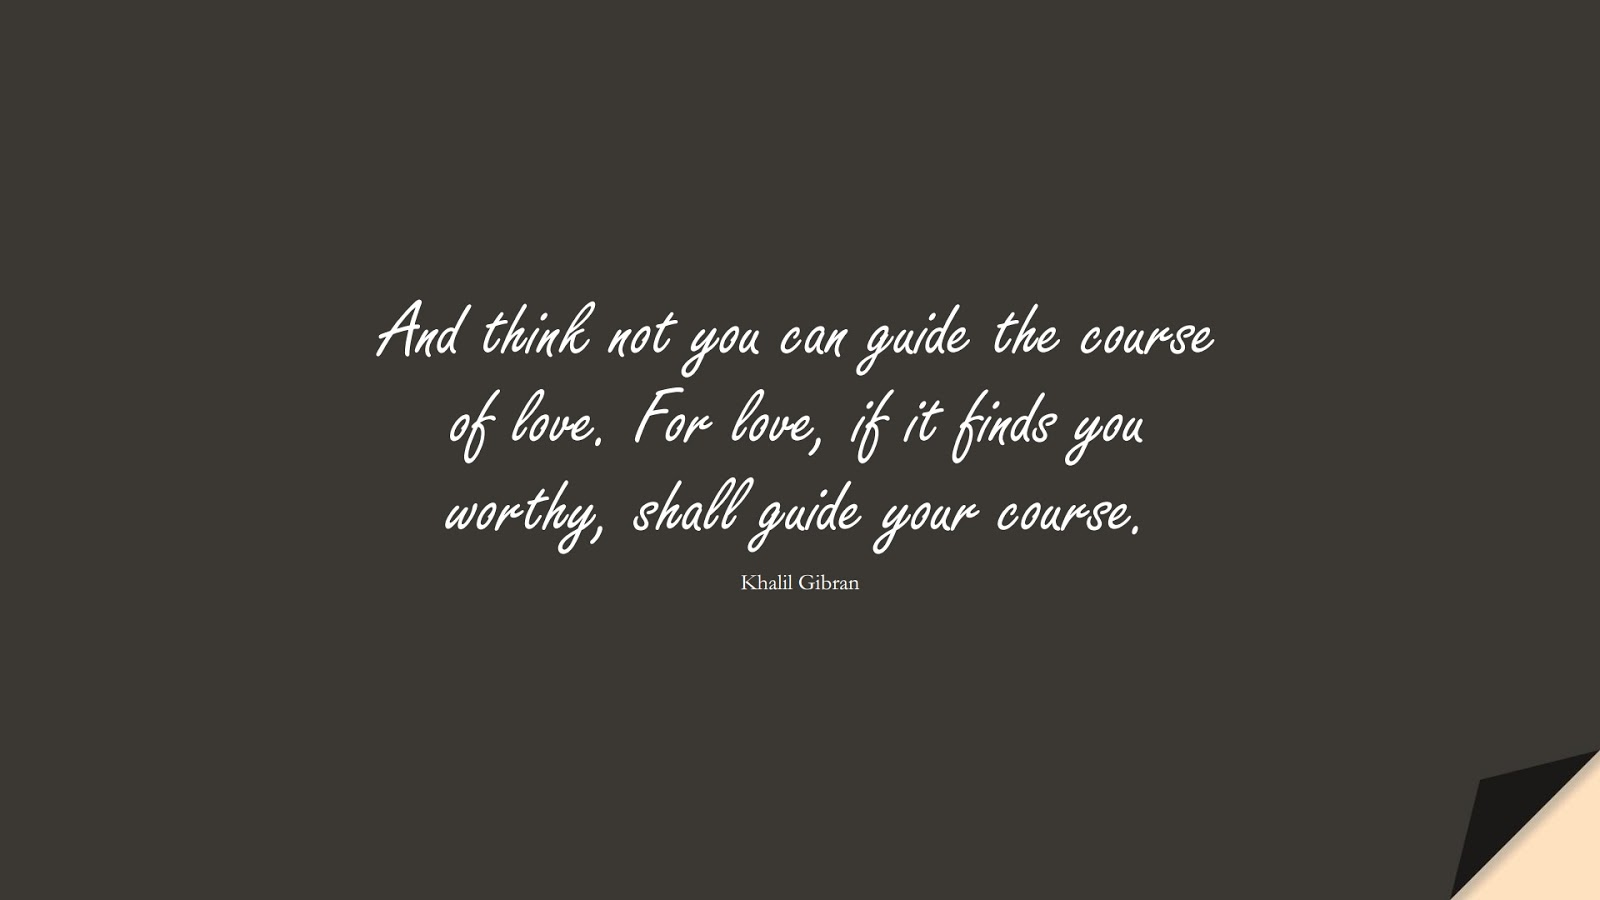 And think not you can guide the course of love. For love, if it finds you worthy, shall guide your course. (Khalil Gibran);  #LoveQuotes